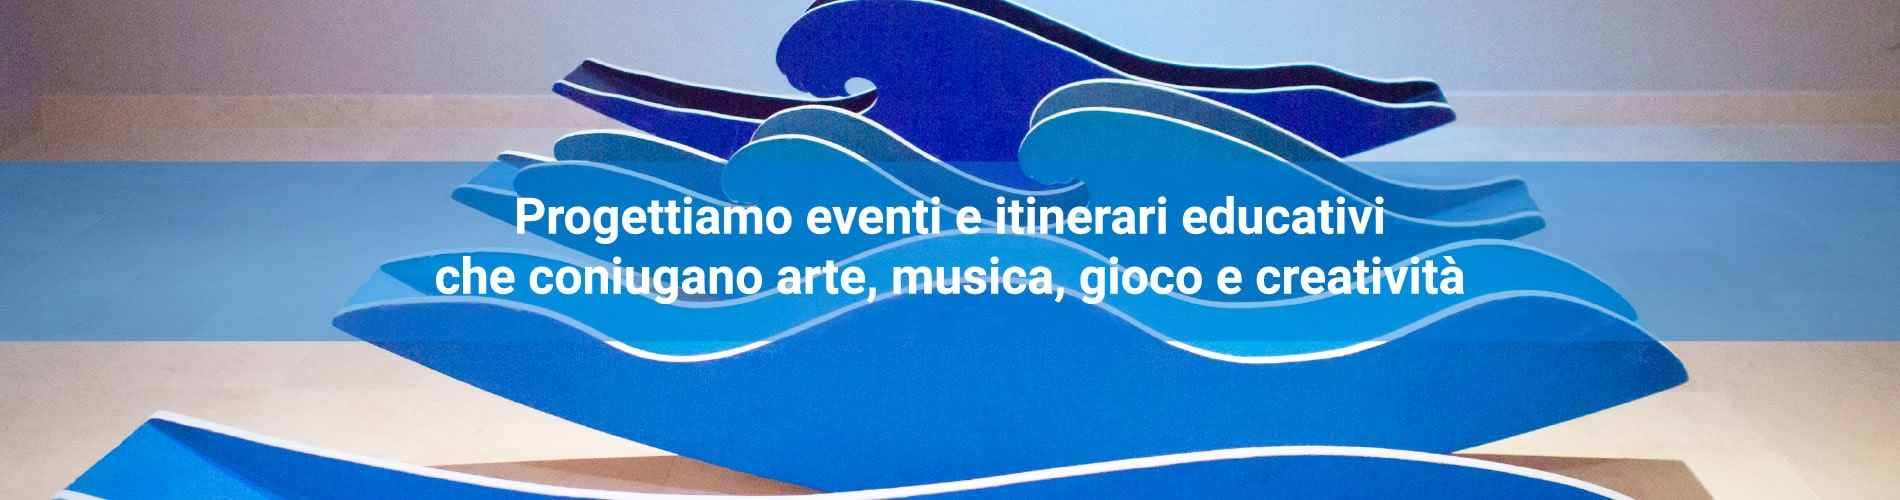 Illustrazioni sonore workshop